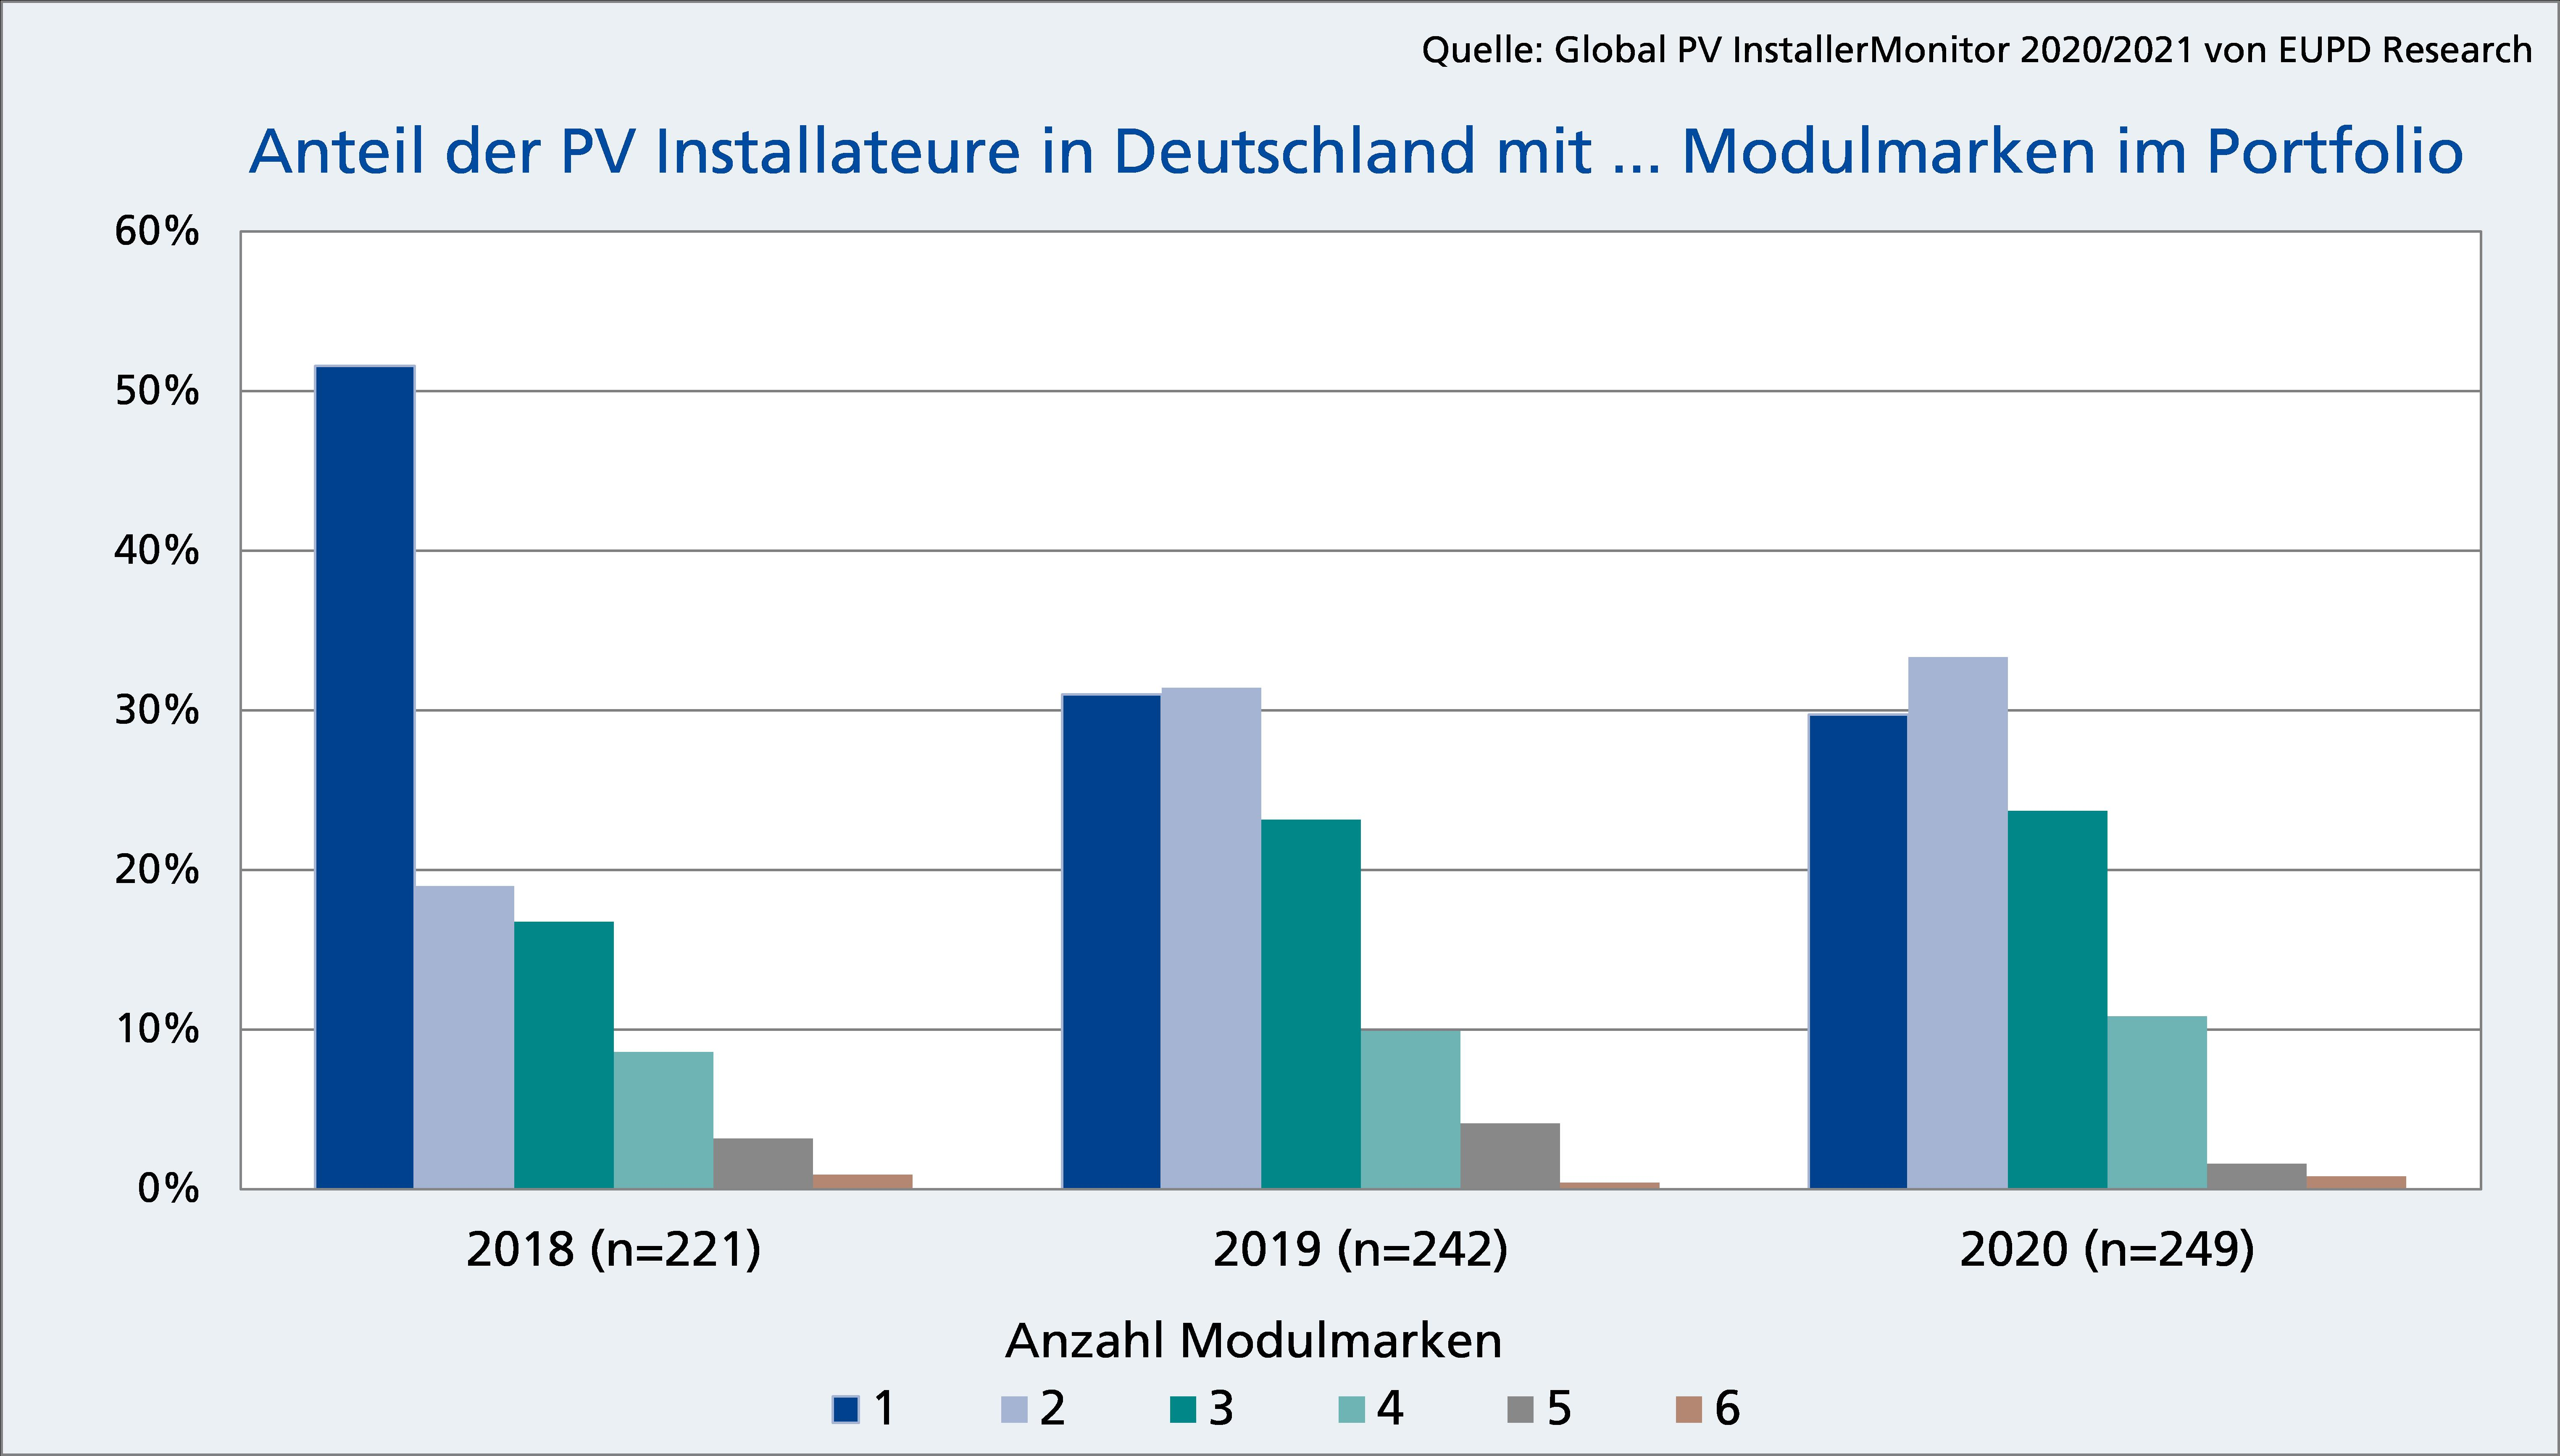 Share of PV installers in Germany with…. Module brands in their portfolio